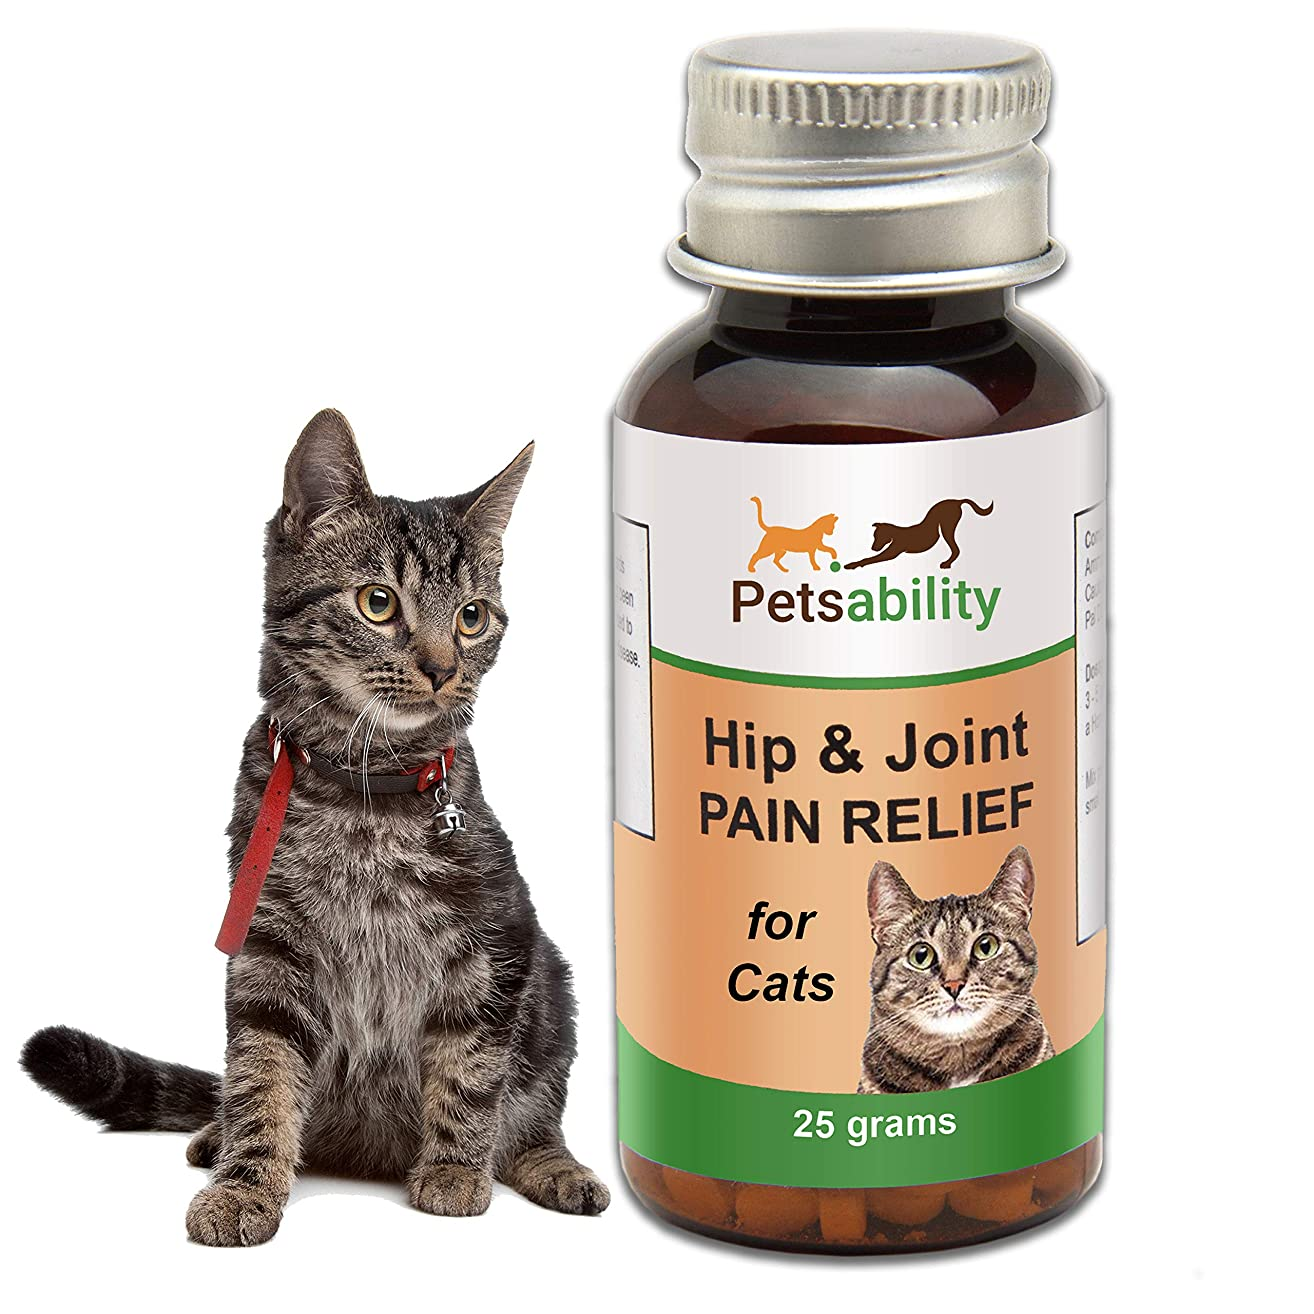 Cat Hip and Joint Pain Relief; Natural Homeopathic Anti-Inflammatory Remedy for Chronic Arthritis Pain and Joint Support | Help Restore Mobility, Energy, and Flexibility